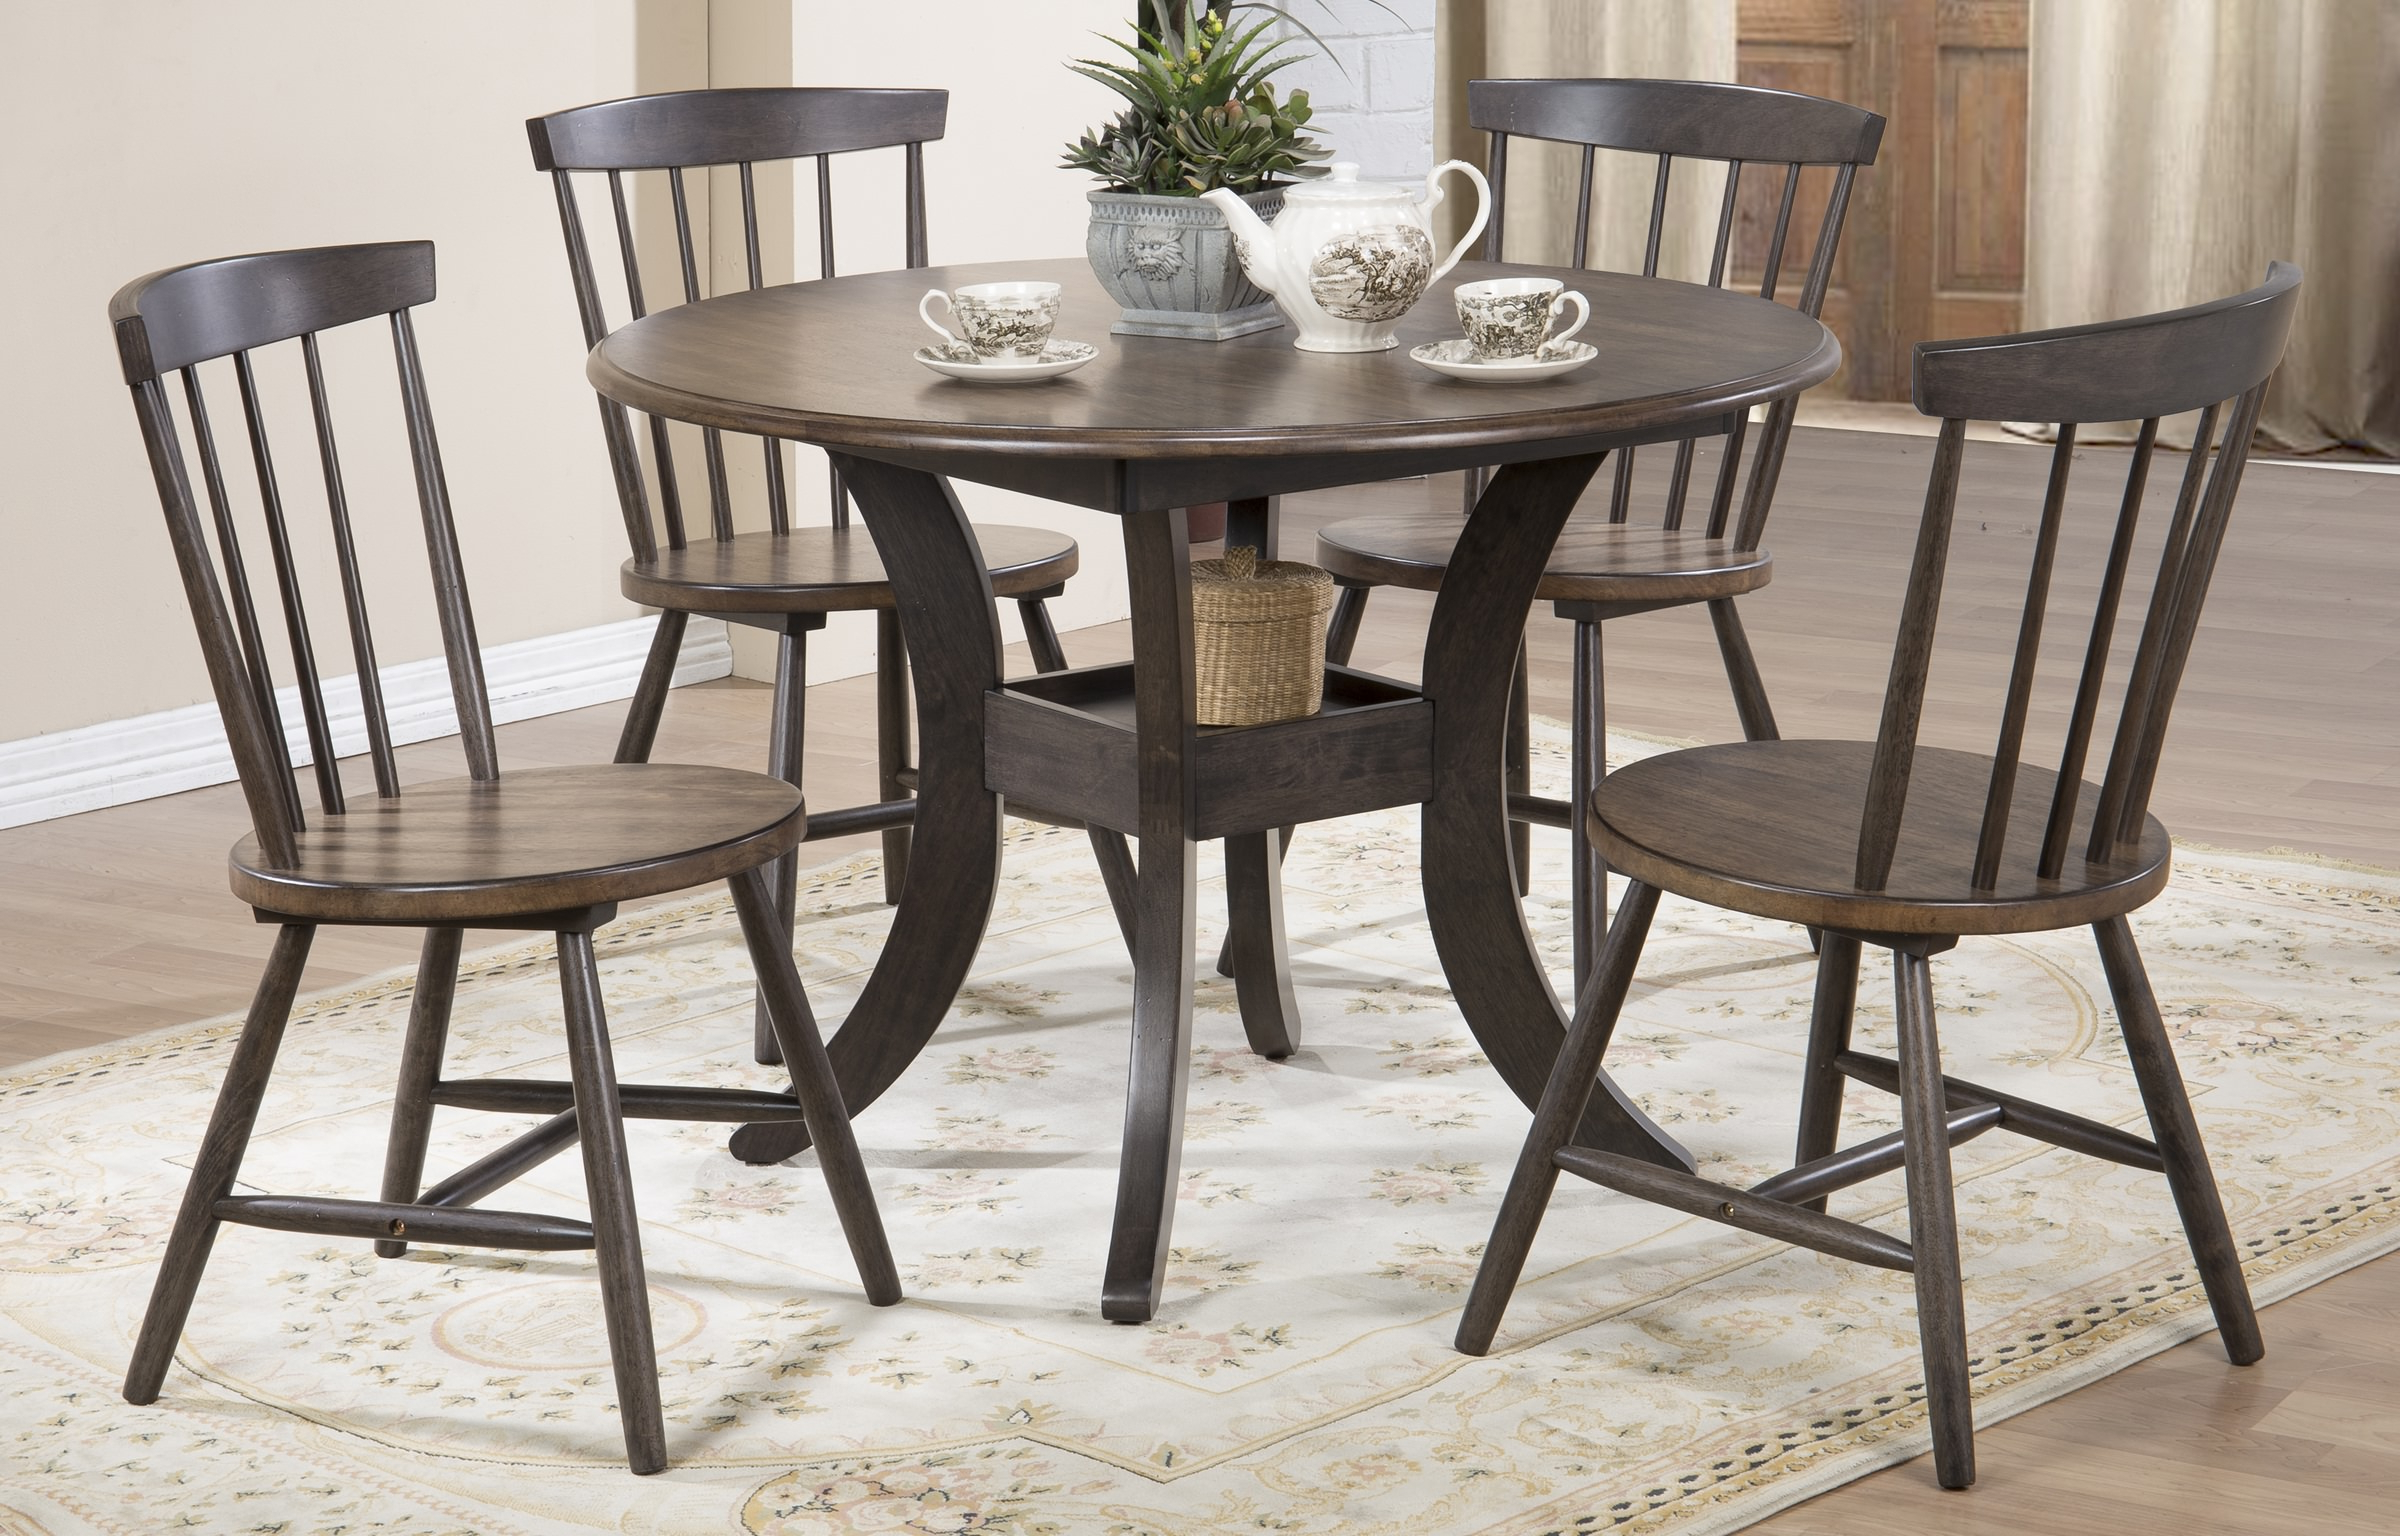 "Brooks Round Dining Tables regarding Well-known Brooks 42"" Round Table"